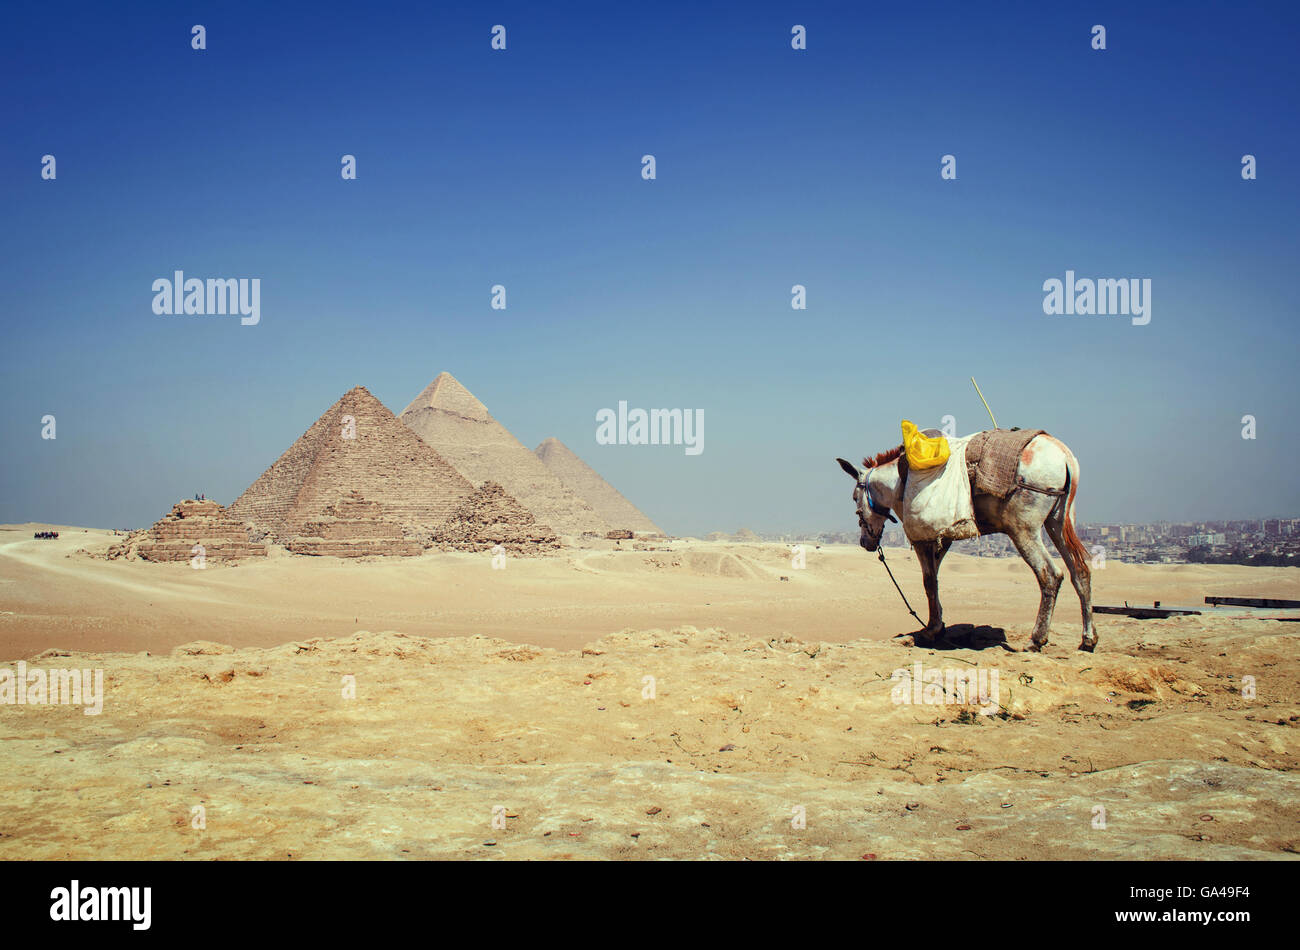 A white weak donkey in the desert by a panoramic view of the pyramids - Stock Image